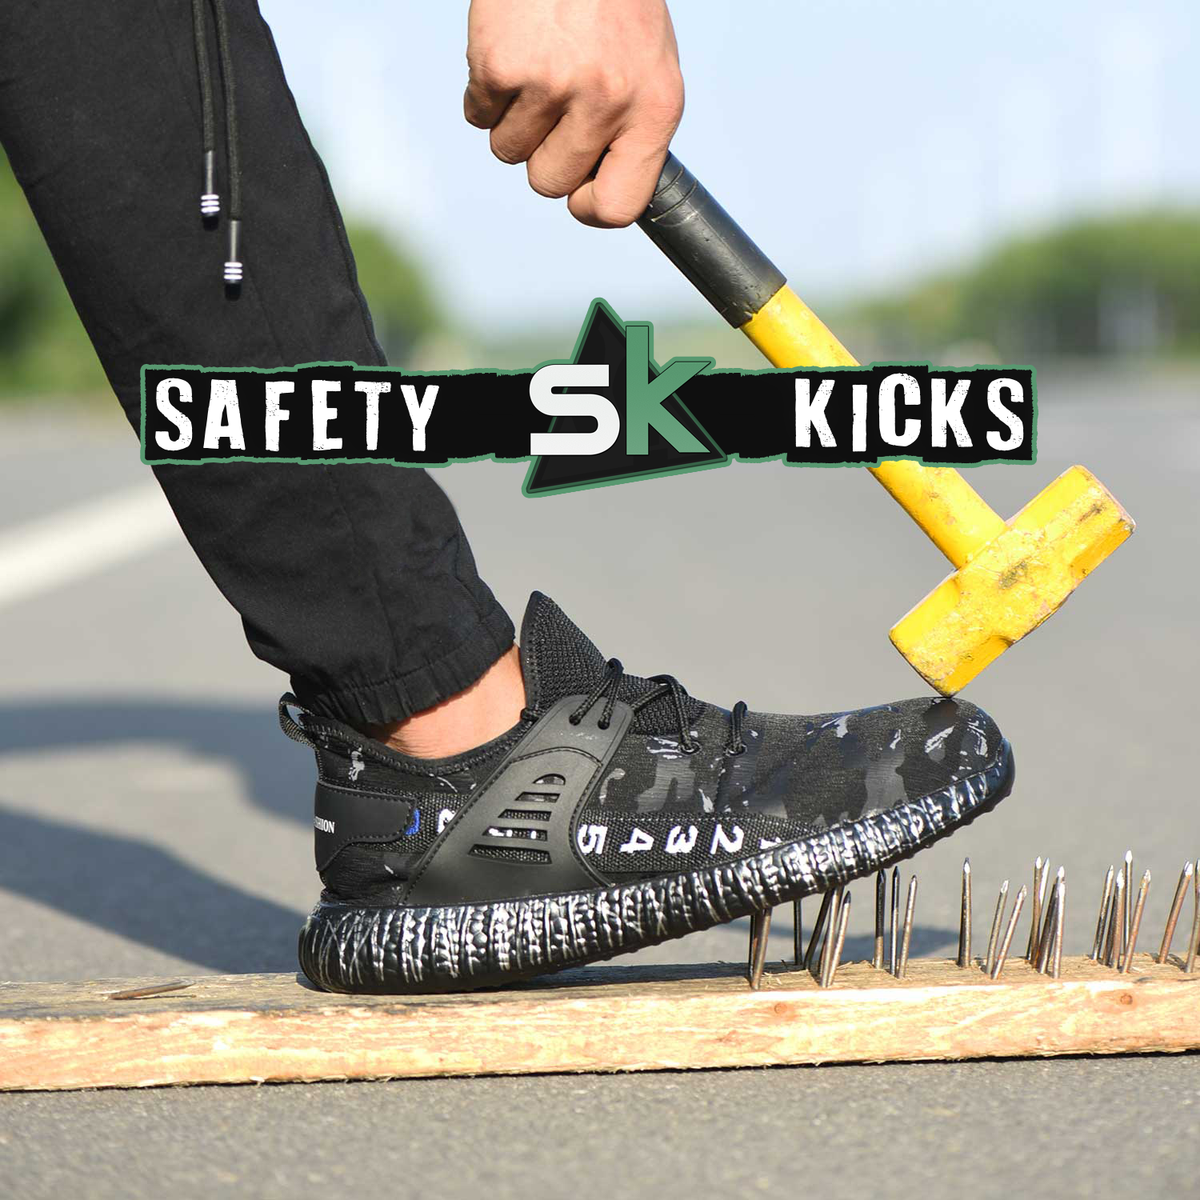 Safety Kicks USA - The sleekest and most durable steel-toe safety shoes